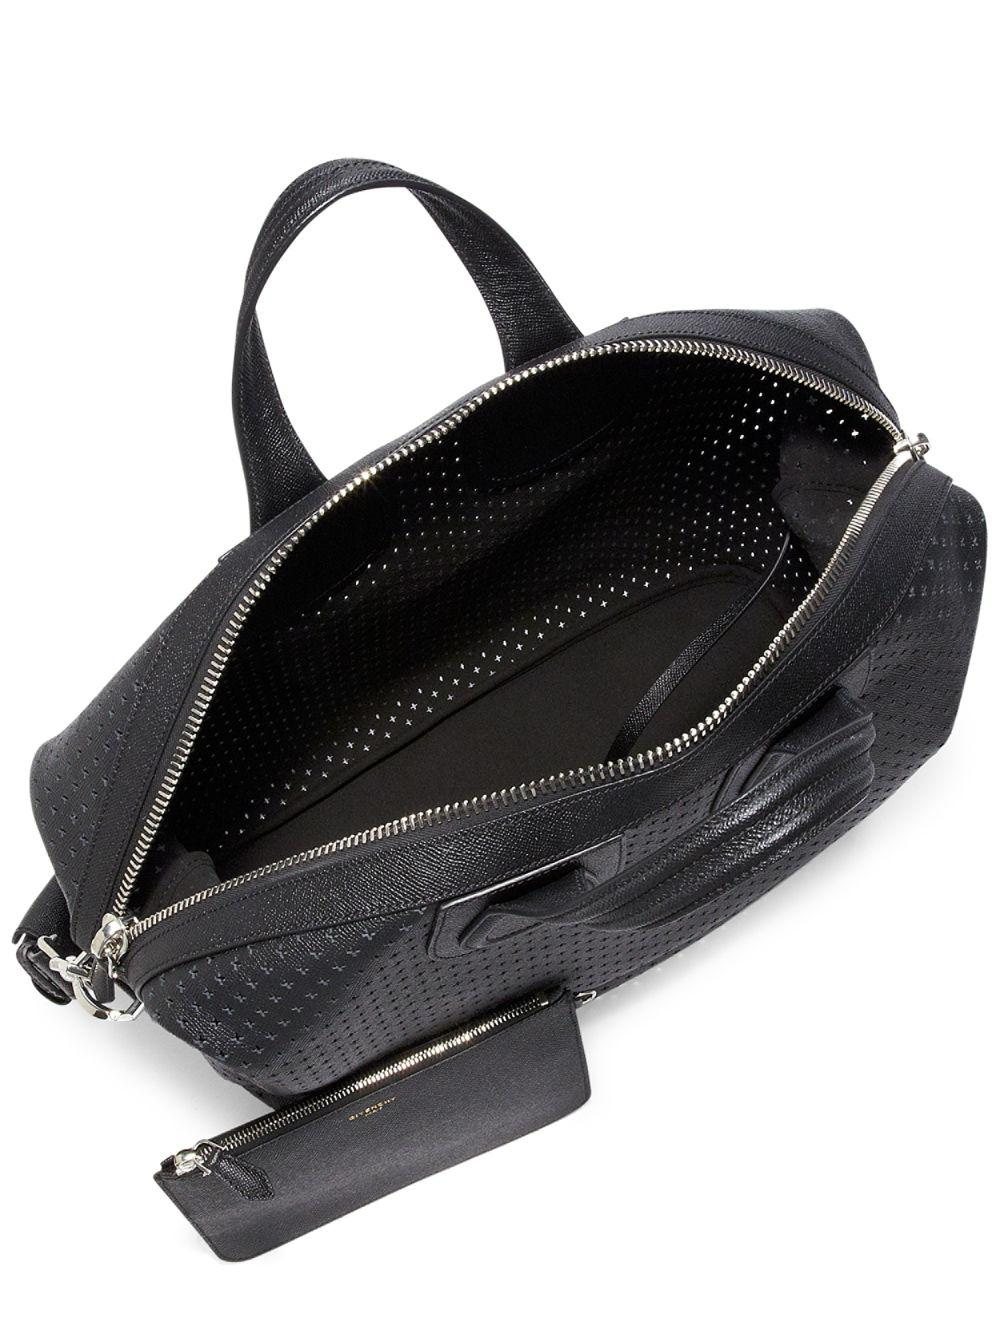 Givenchy Nightingale Perforated Leather Bag in Black for Men - Lyst 4b483f49346a2